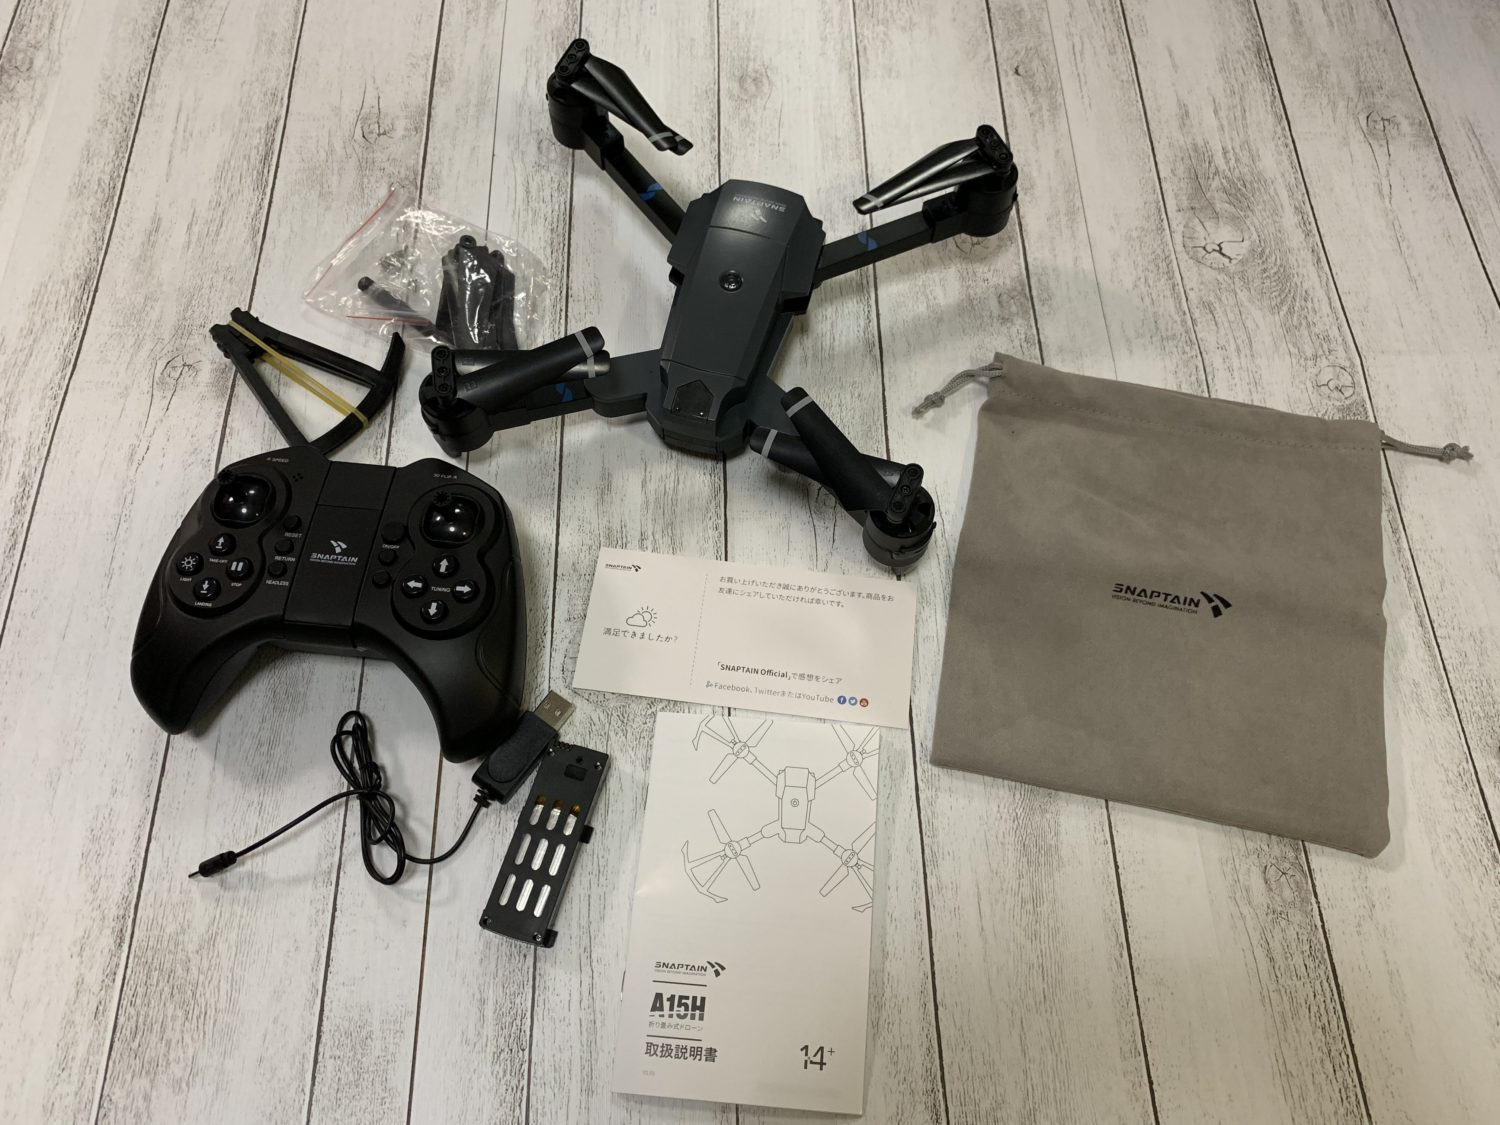 【200g未満】Snaptain A15H ドローン 実機レビュー